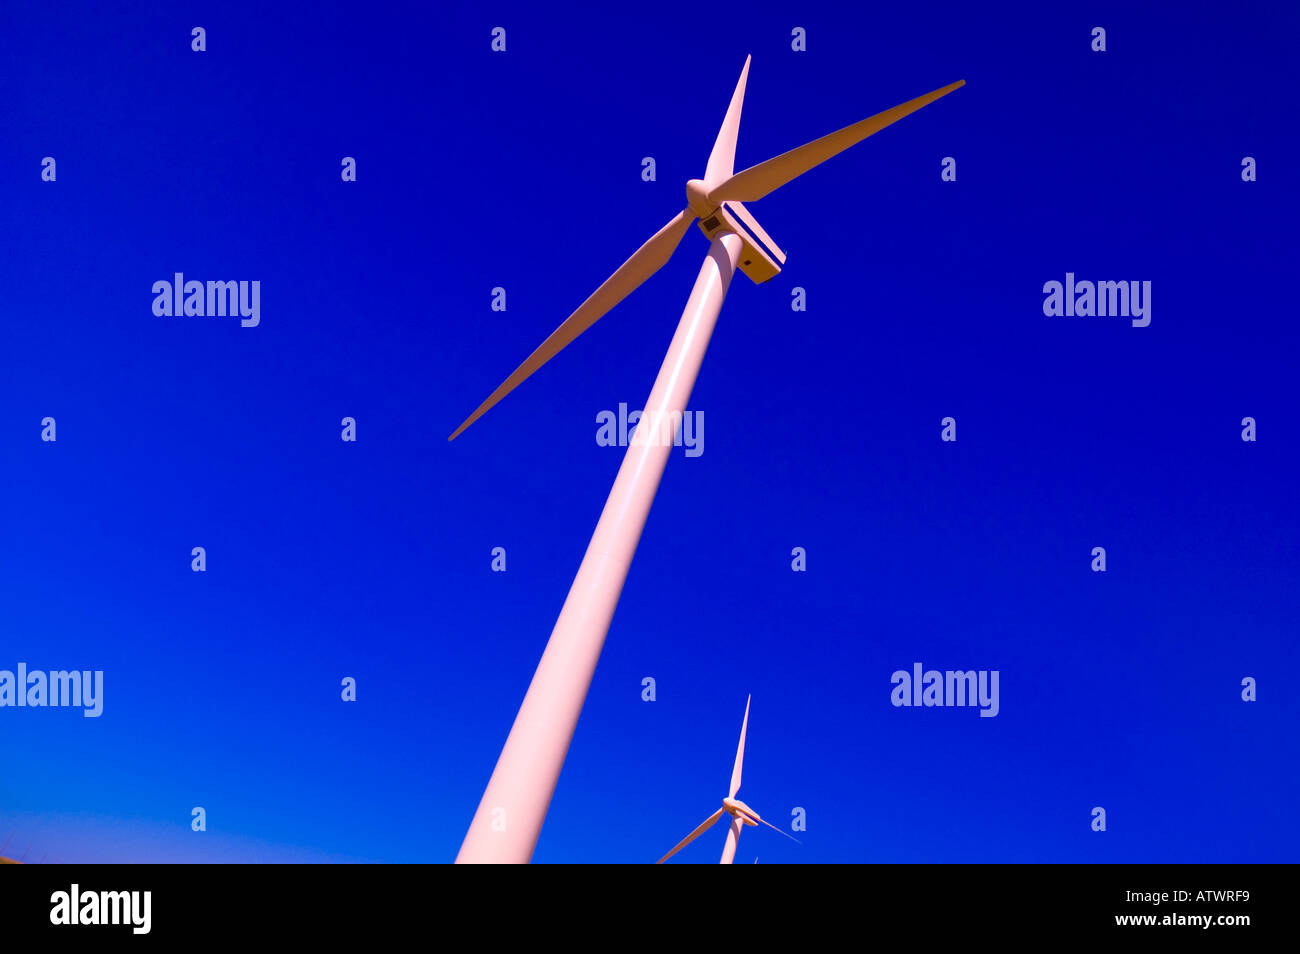 Environmental Issues - Stock Image